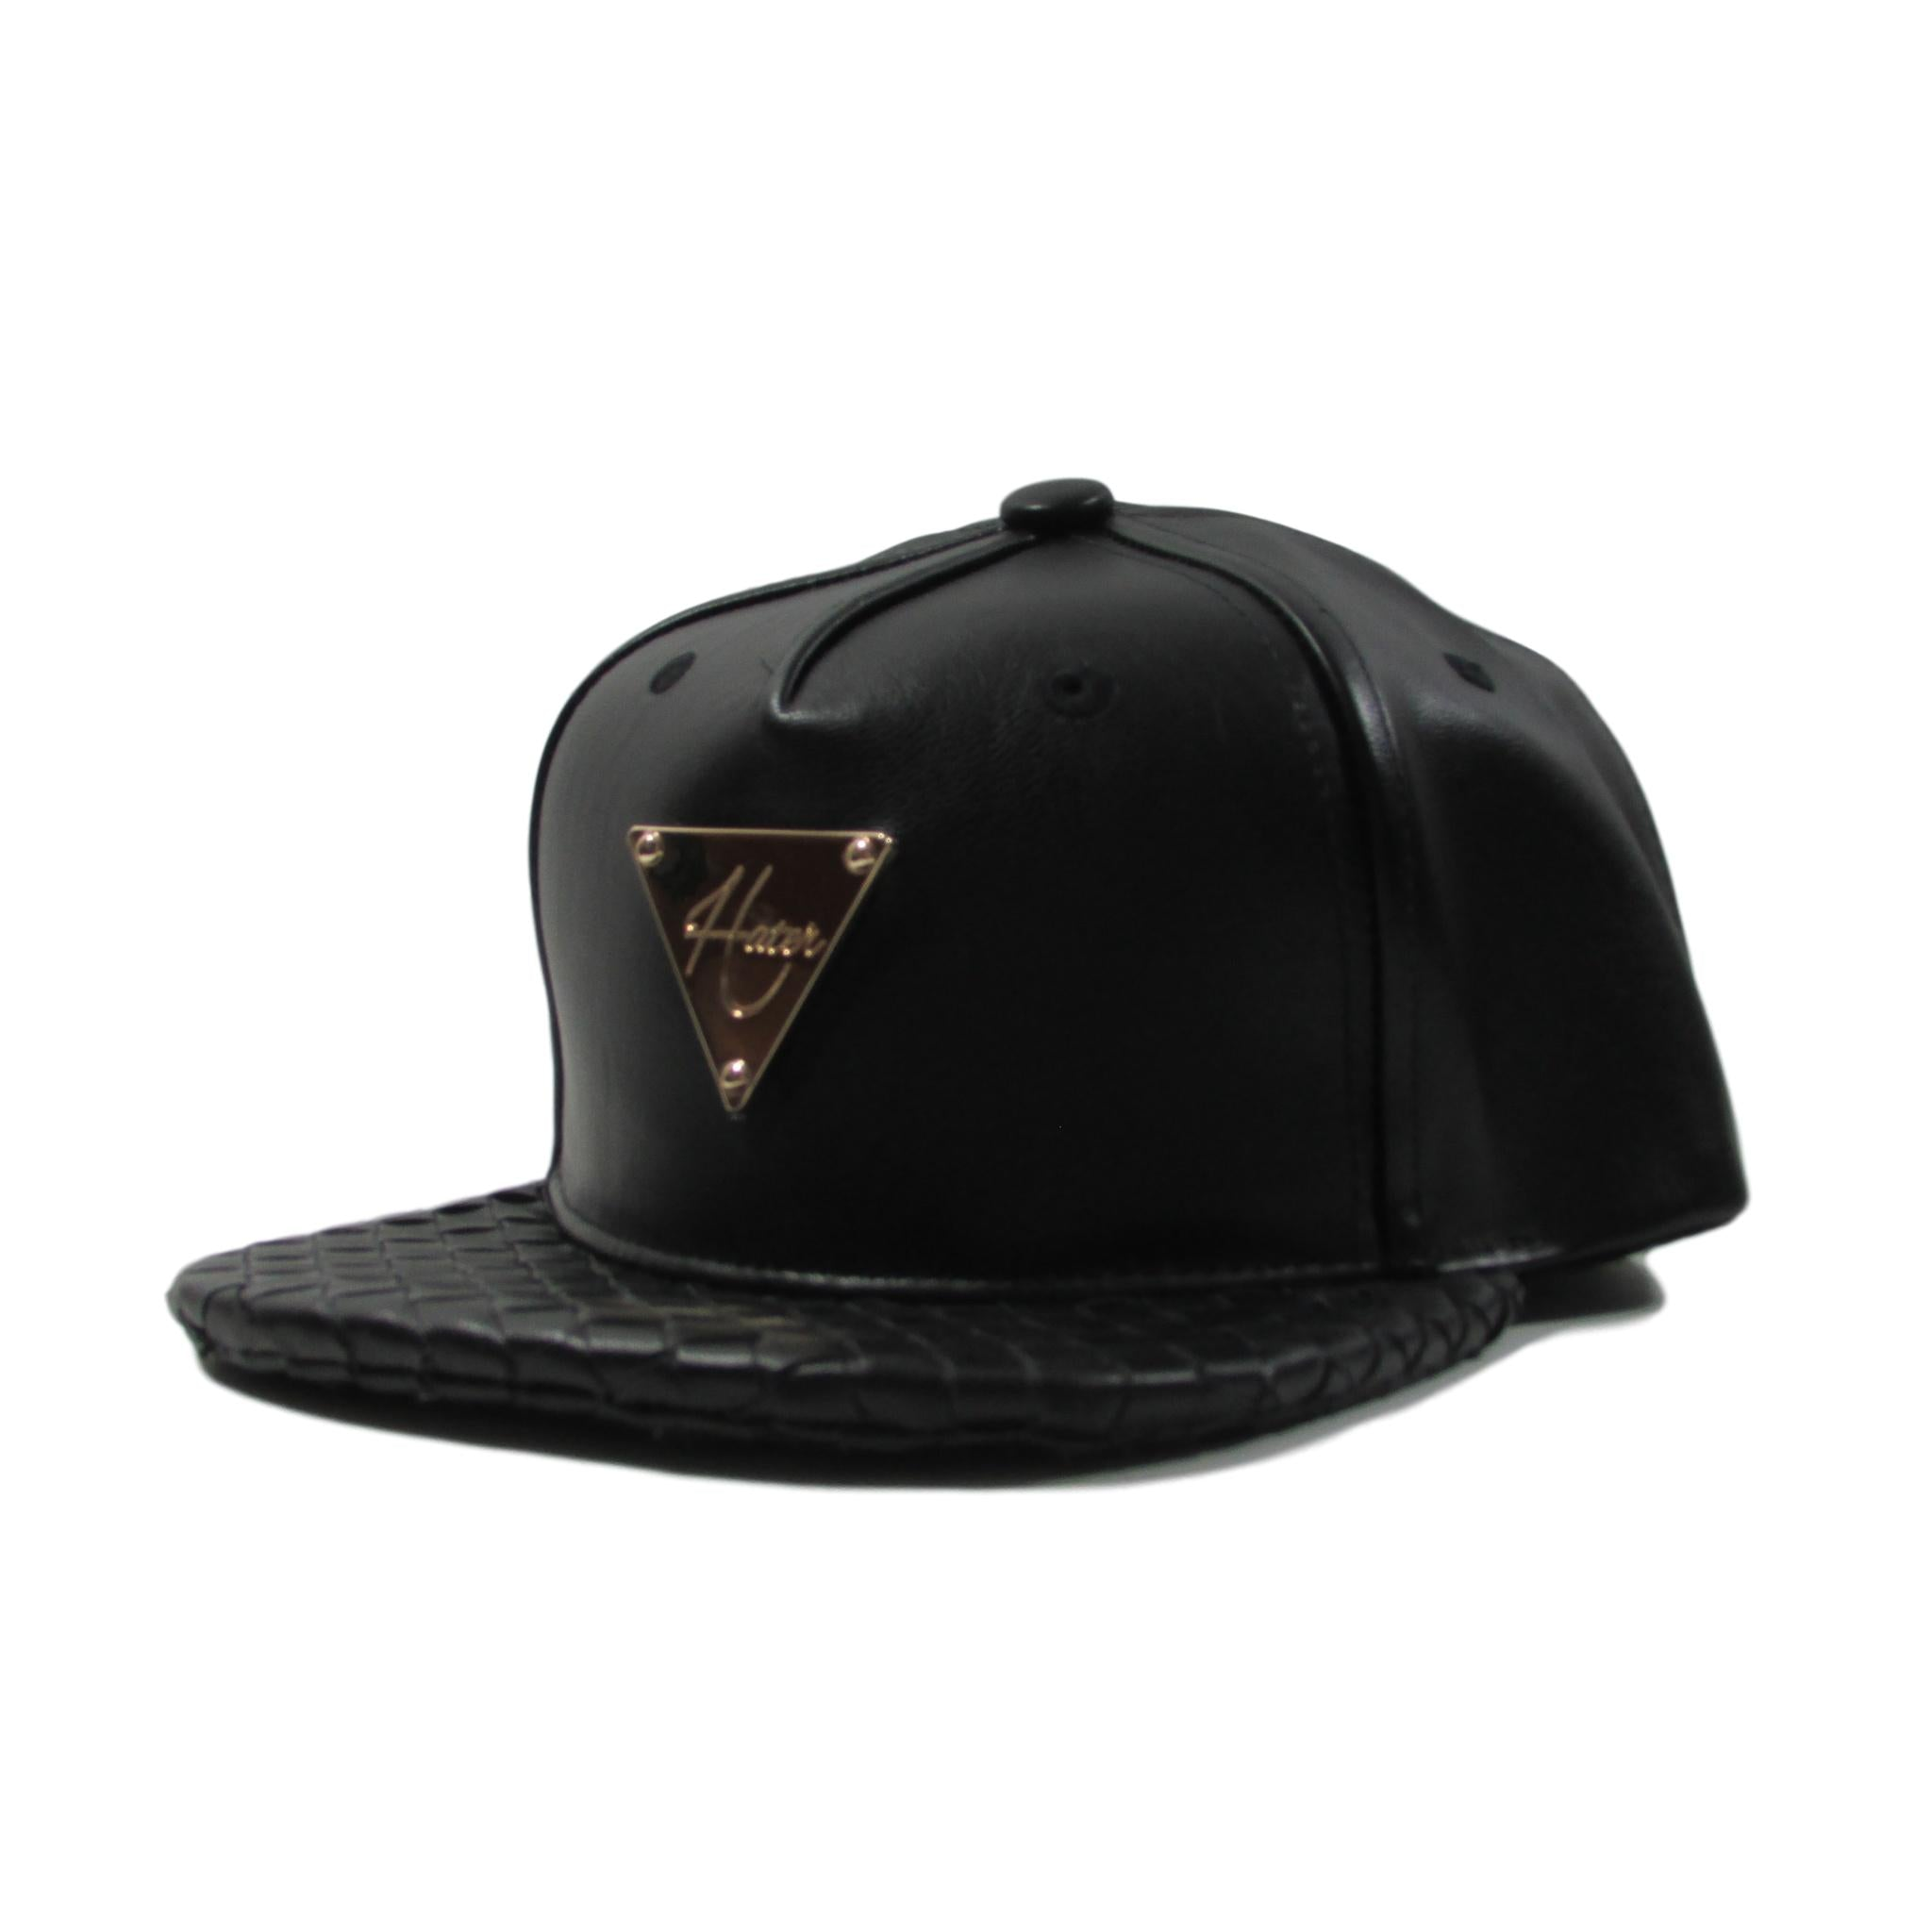 HATer Premium Black Leather Snapback Hat w/ Intrecciato Brim